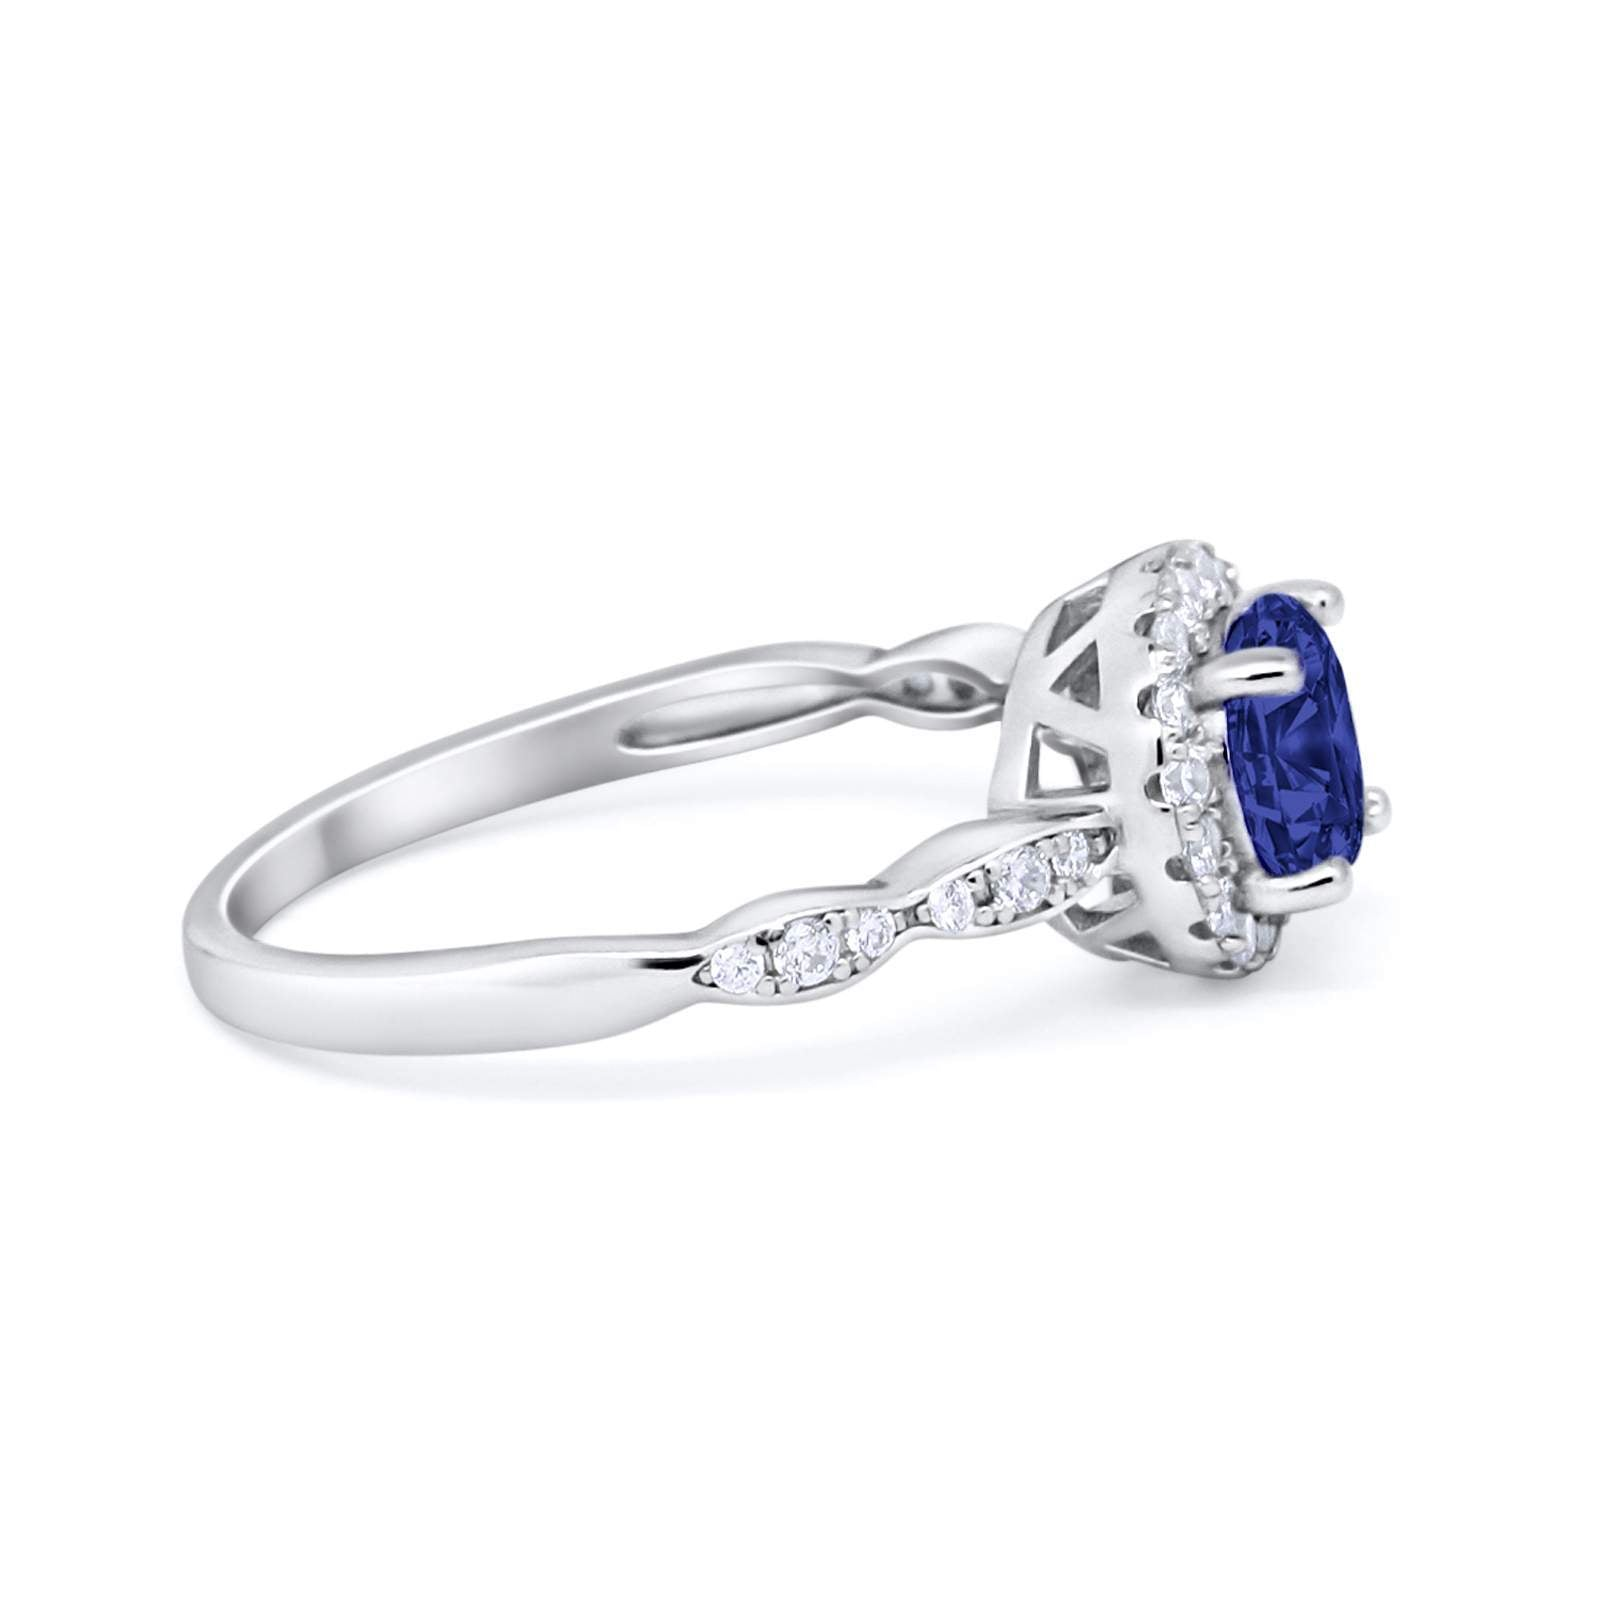 Art Deco Design Engagement Ring Simulated Blue Sapphire CZ 925 Sterling Silver